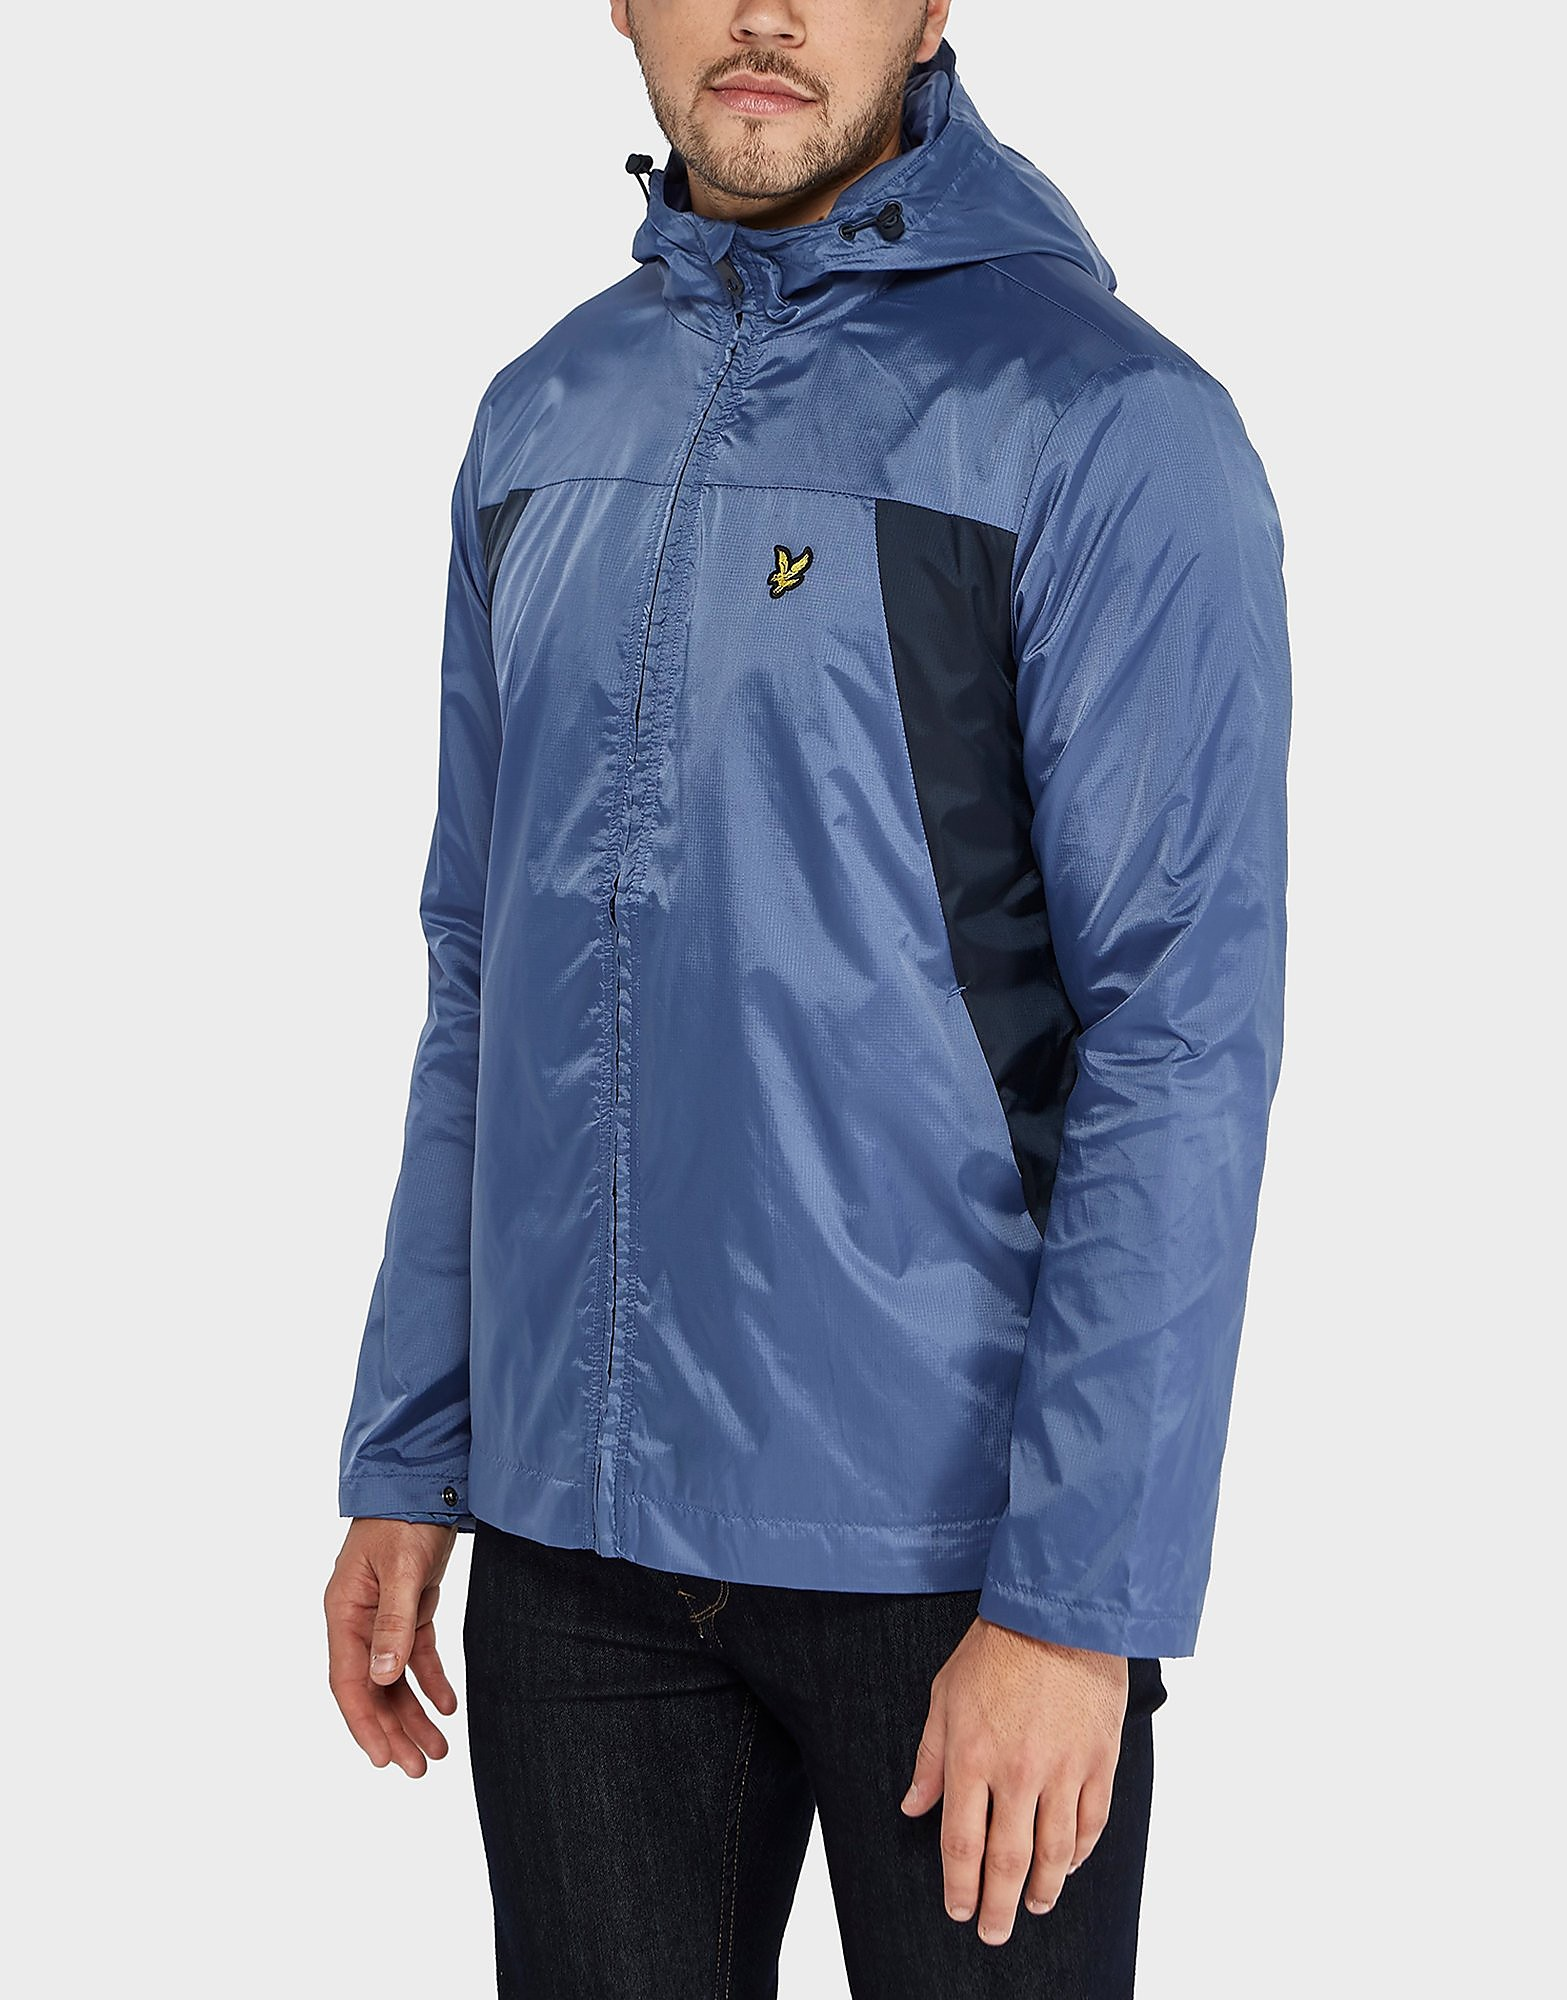 Lyle & Scott Lightweight Panel Jacket